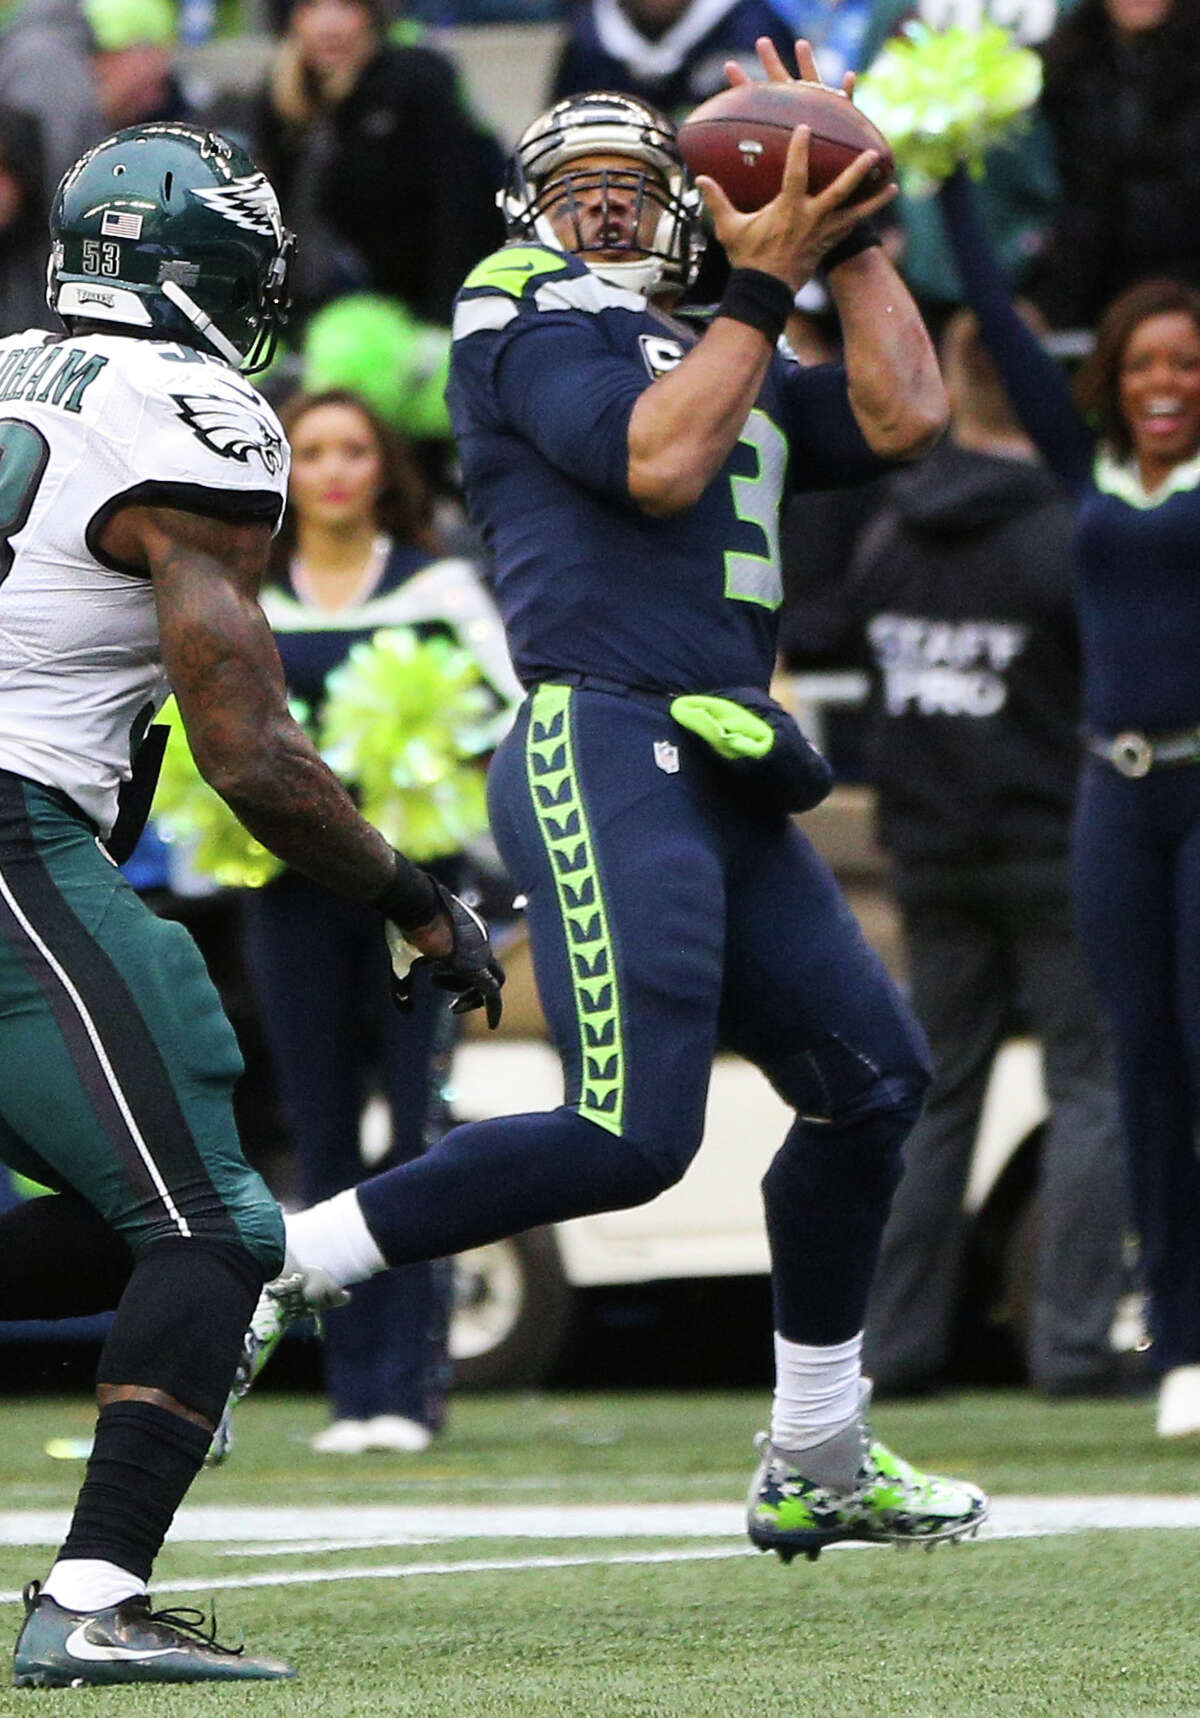 Seahawks quarterback Russell Wilson makes a catch for a touchdown in the second half of a football game against the Philadelphia Eagles at CenturyLink Field, Nov. 20, 2016.